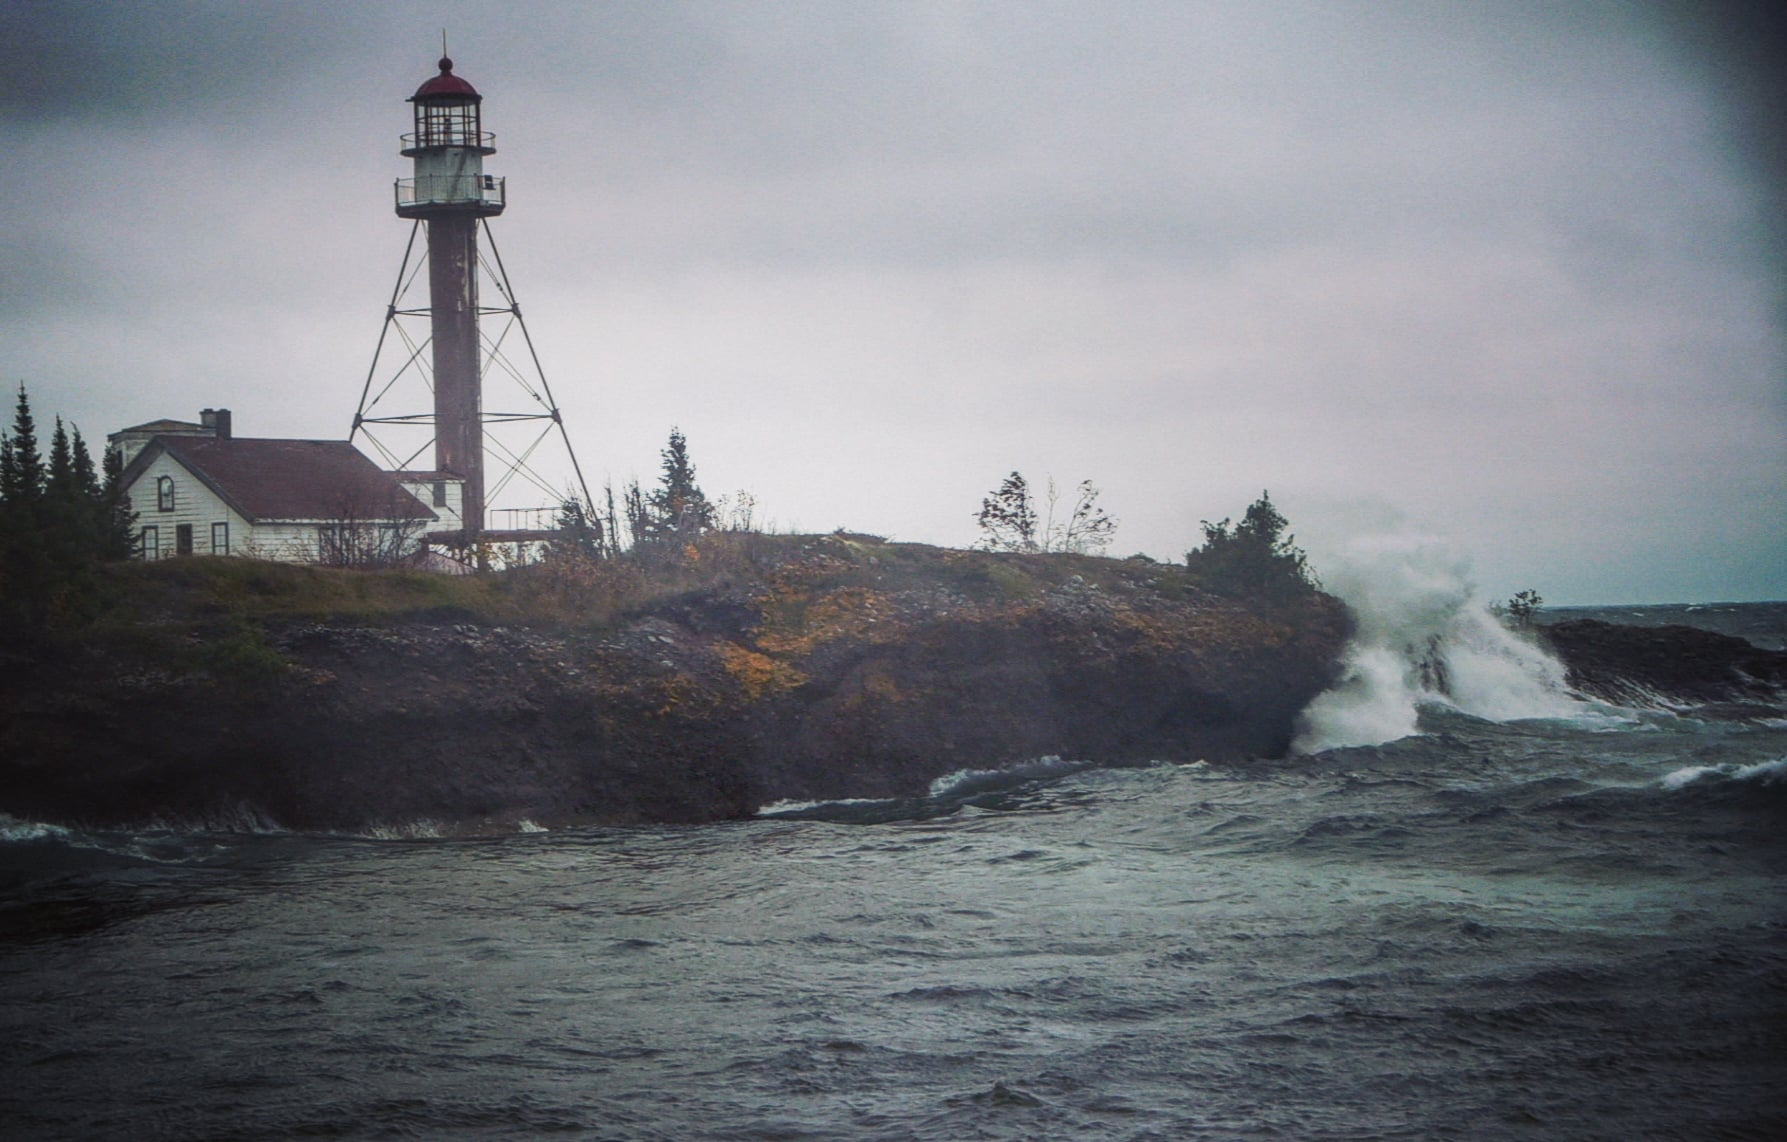 During October 2020, I had the chance to count migrating waterbirds from the vantage of Manitou Island for a Copper Country Audubon migration survey. Manitou is roughly 1,000 acres, uninhabited, and in Lake Superior a few miles east of the Keweenaw Peninsula's tip. The weather there was elemental; mercurial...